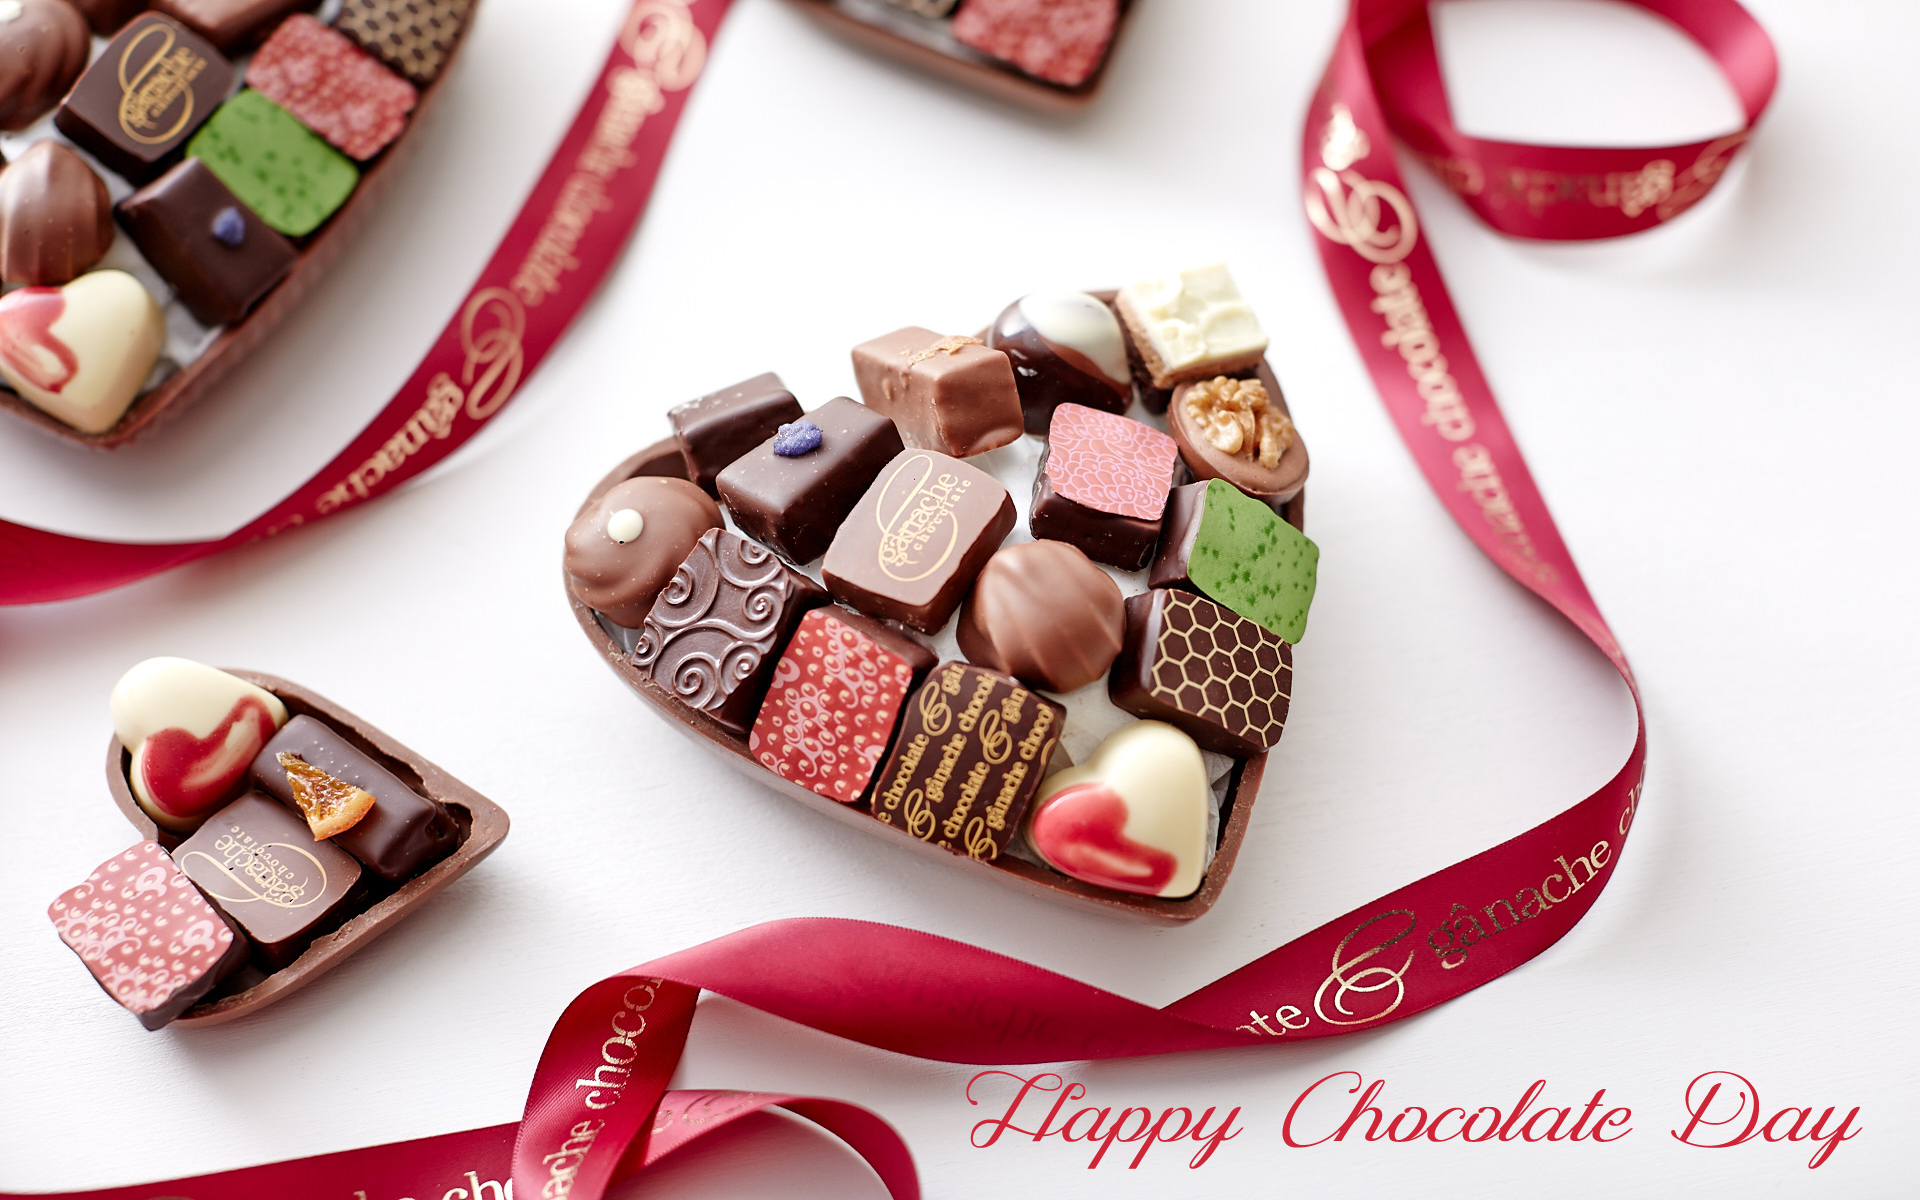 Chocolate Day Wallpaper Free Download